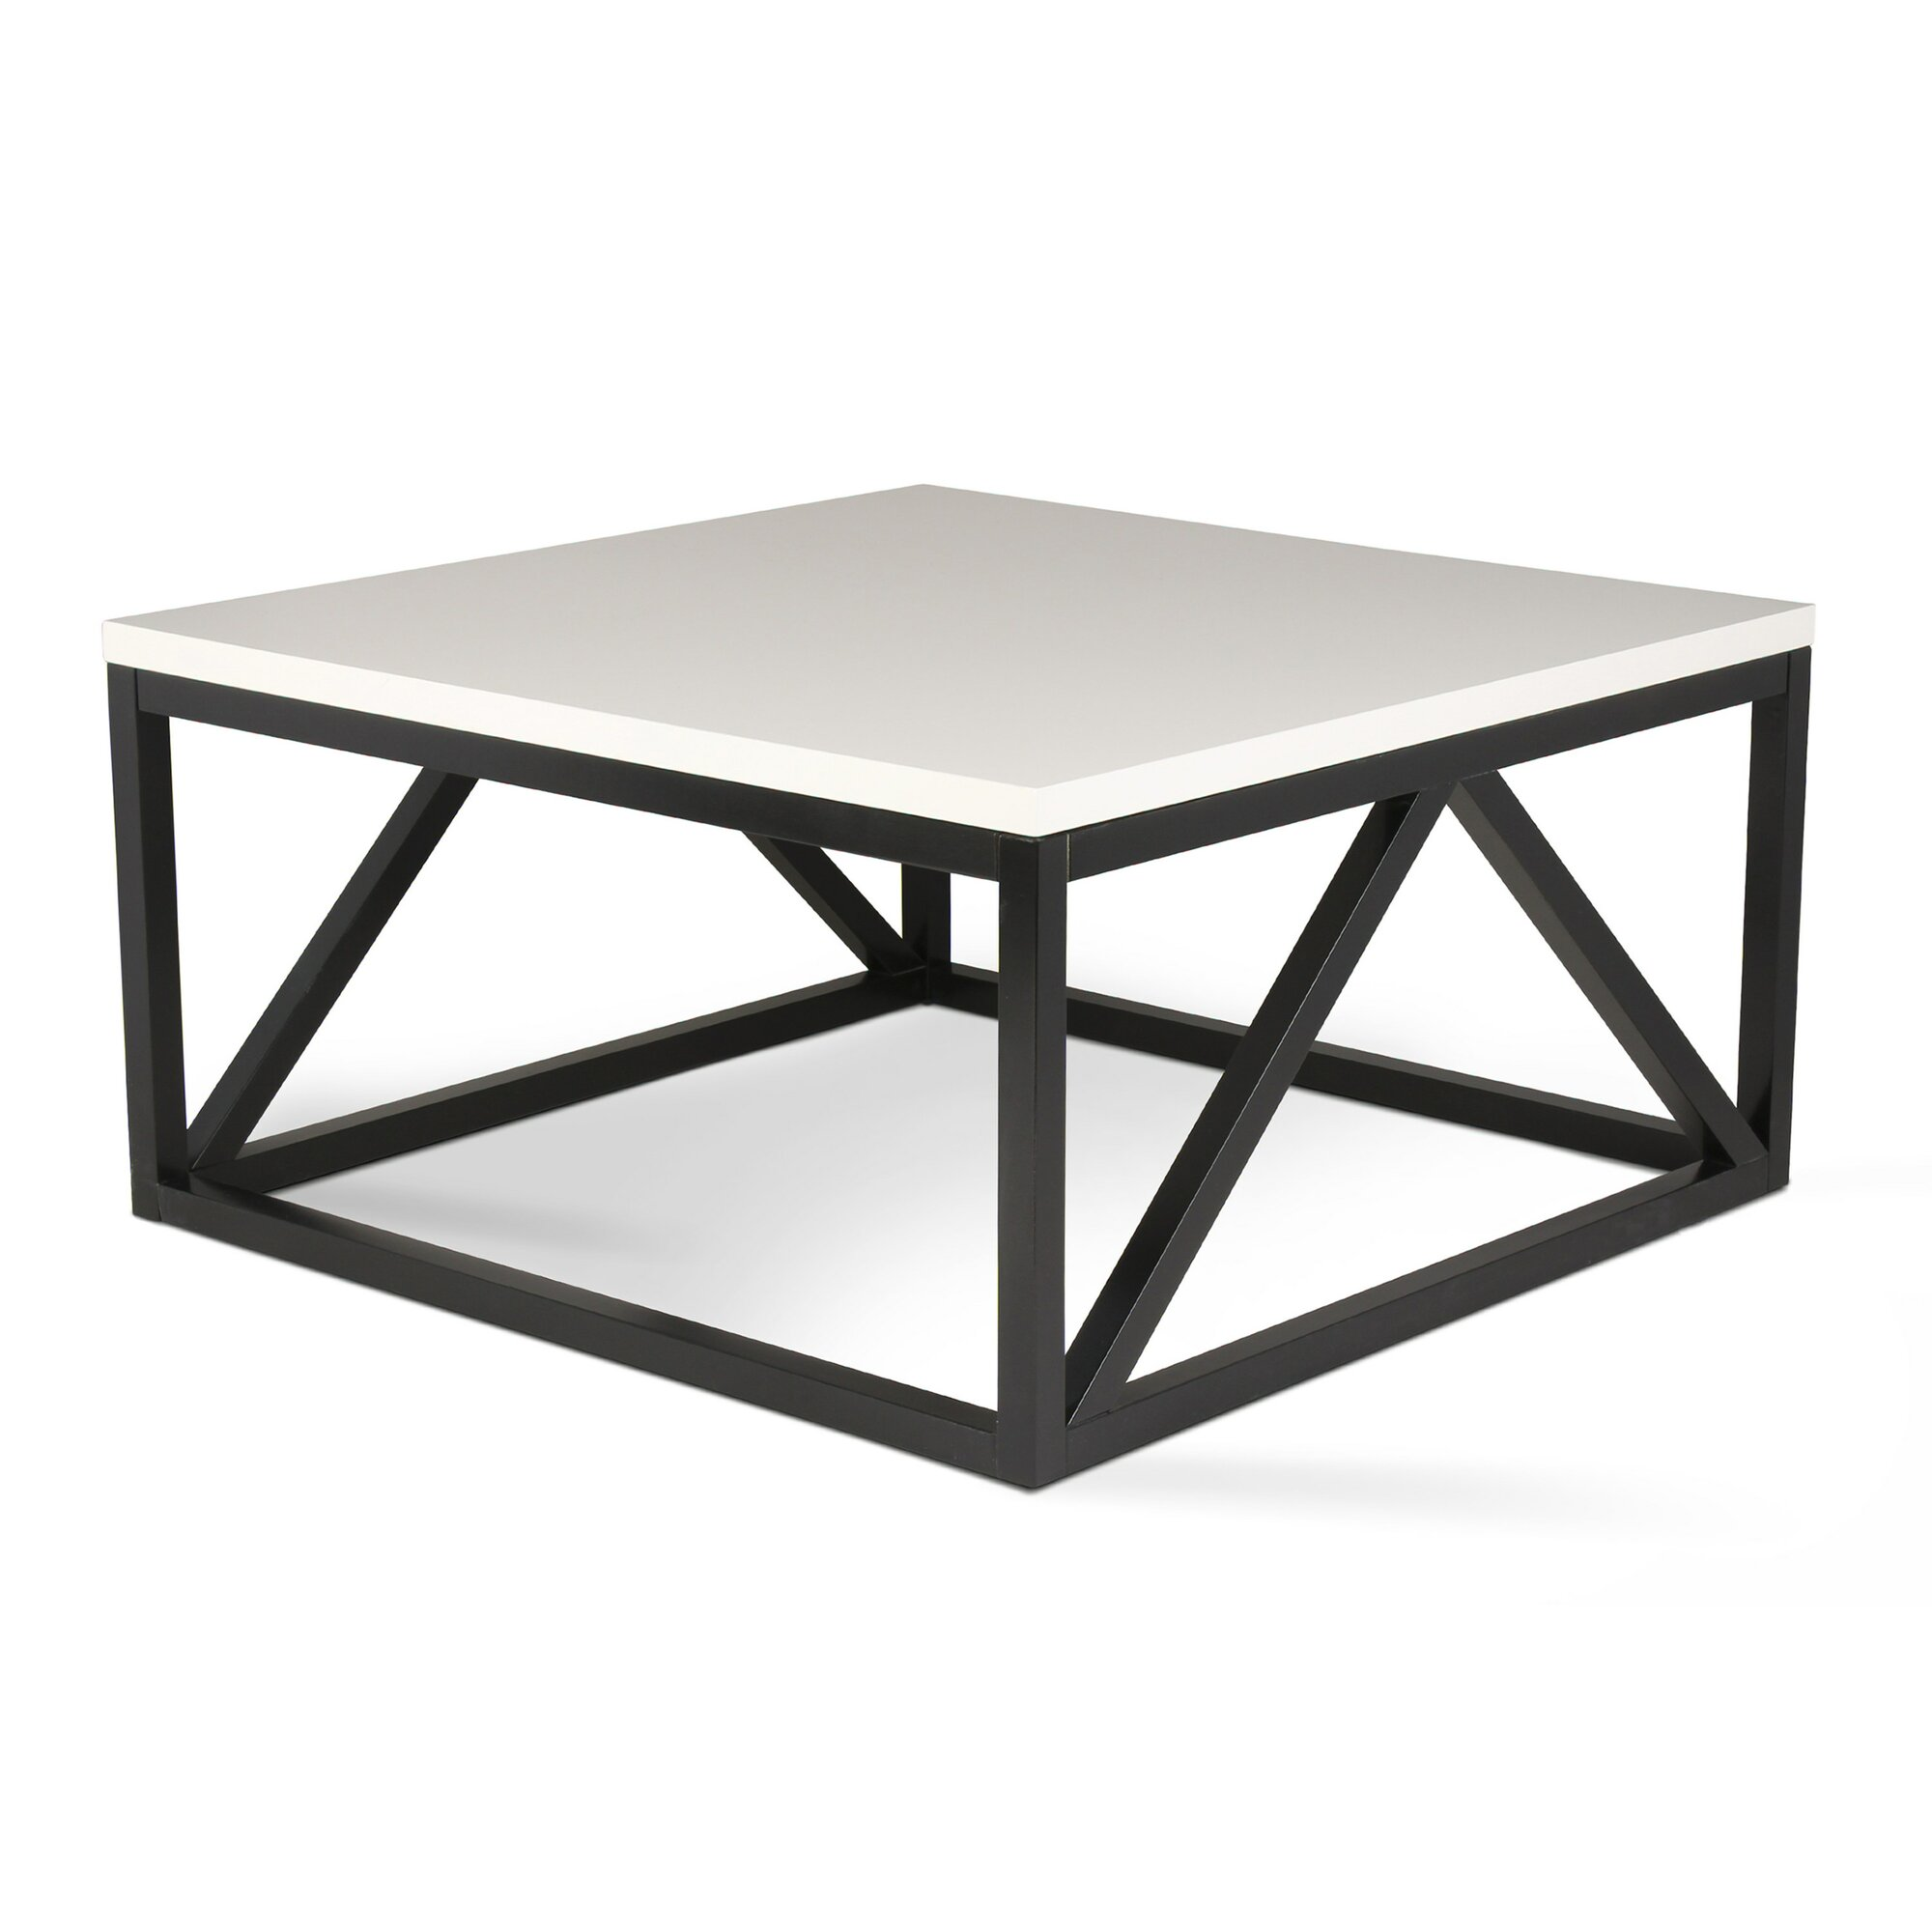 Kate and Laurel Kaya Two Toned Wood Square Coffee TableReviews